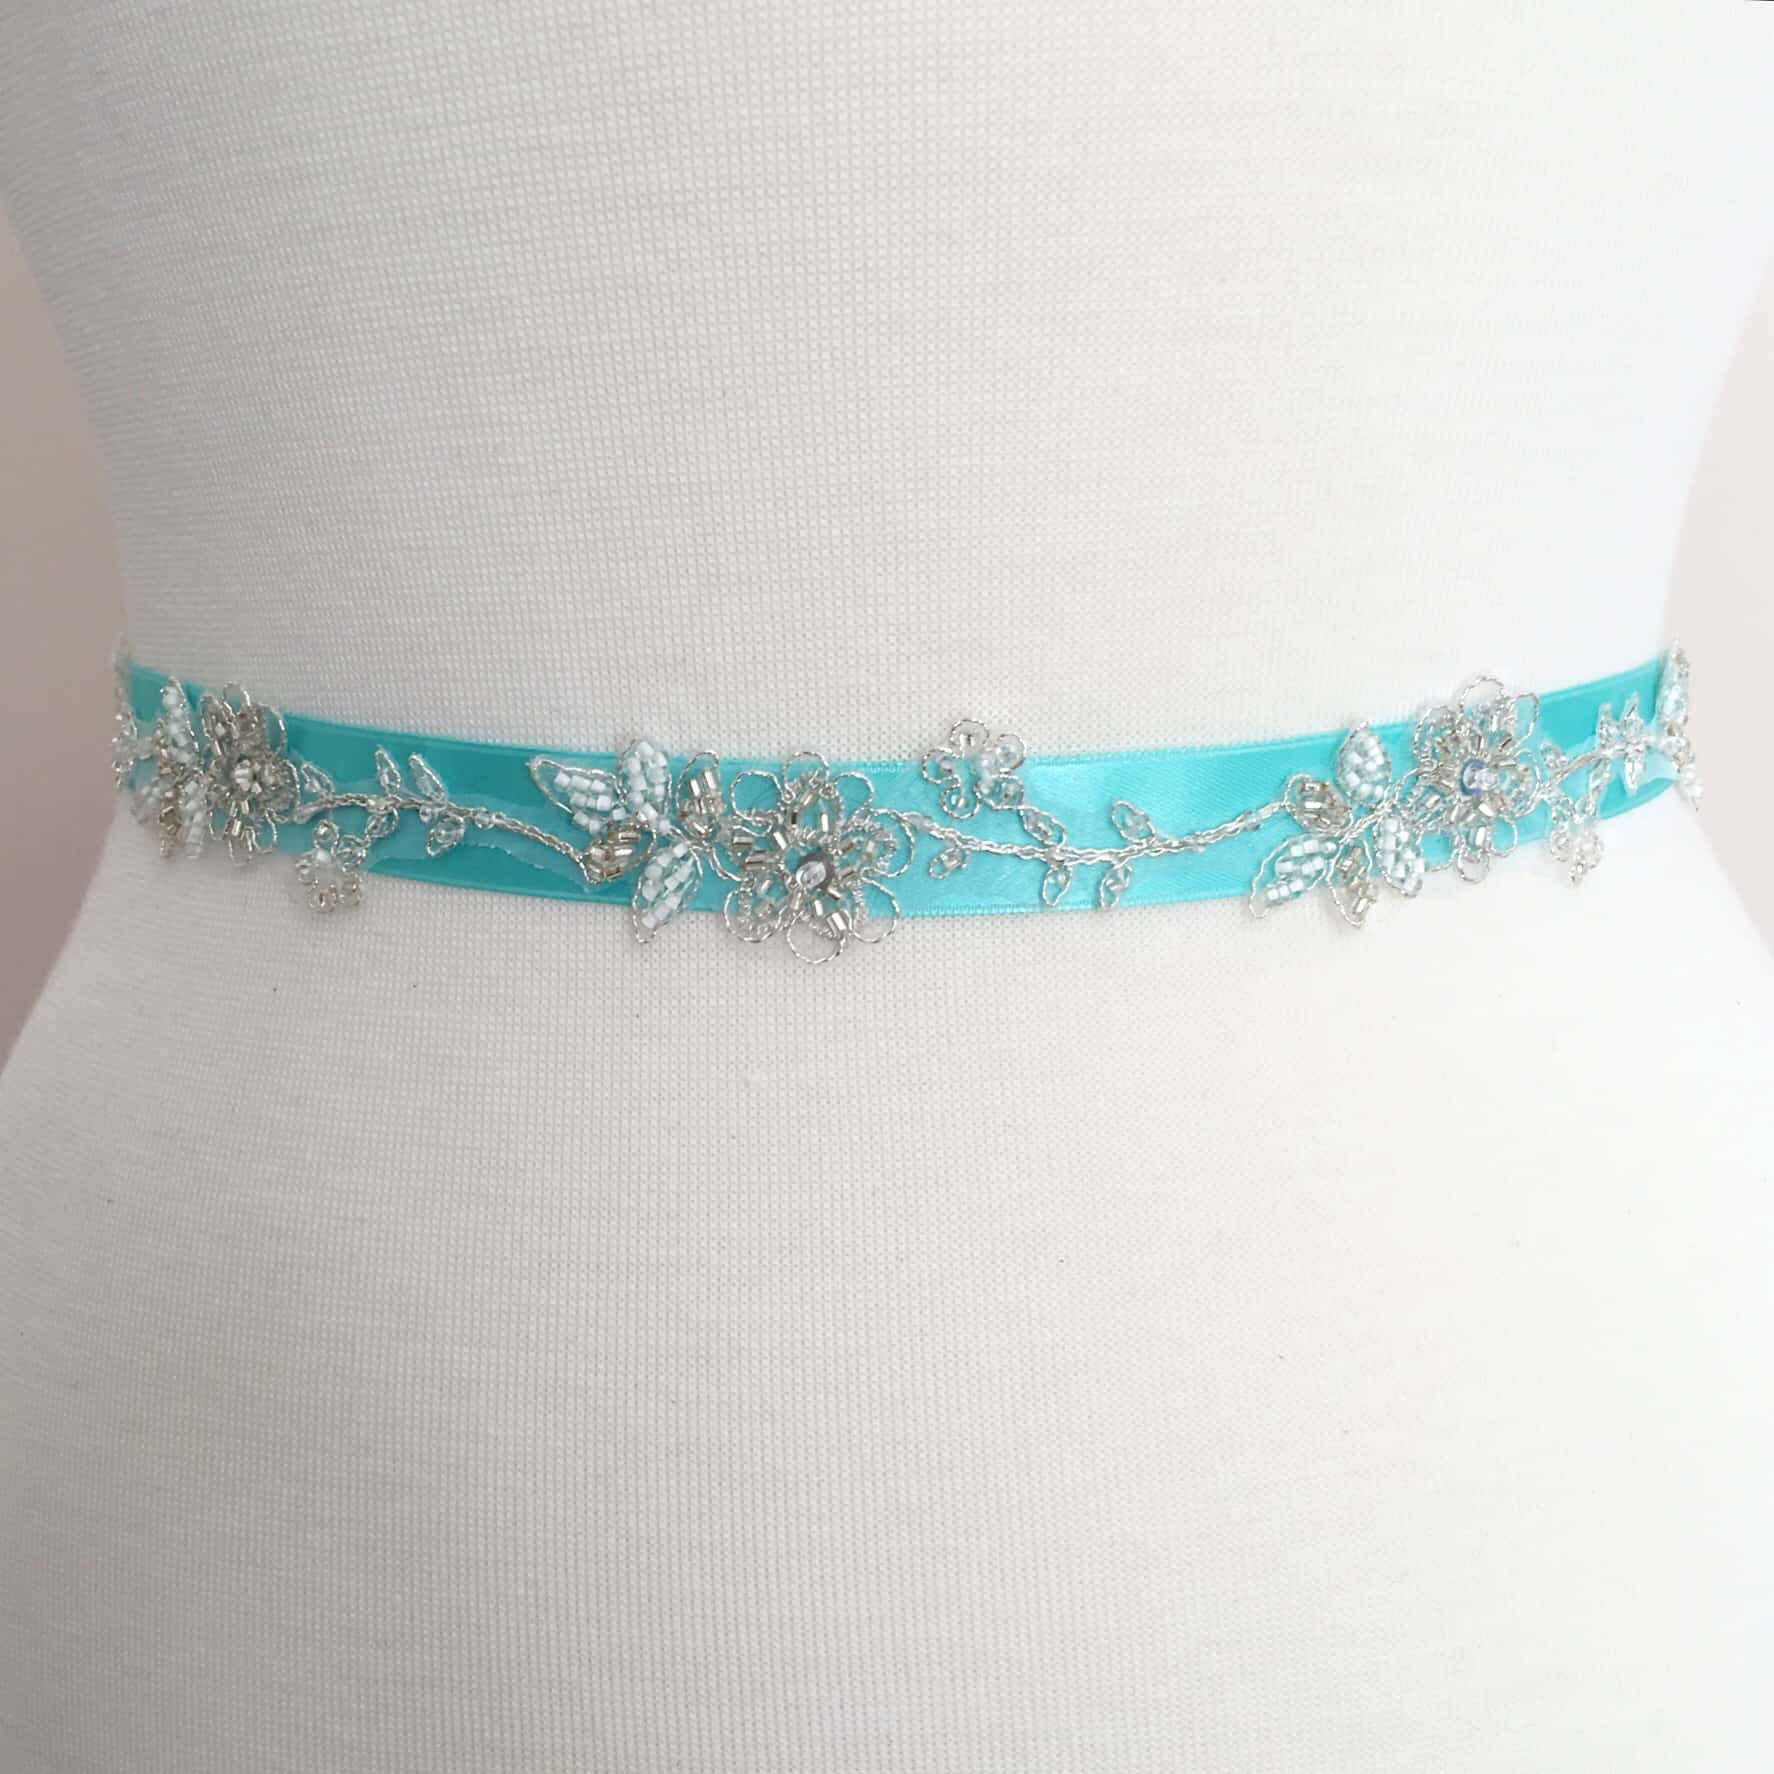 Patrizia Embroidered Beaded Trim